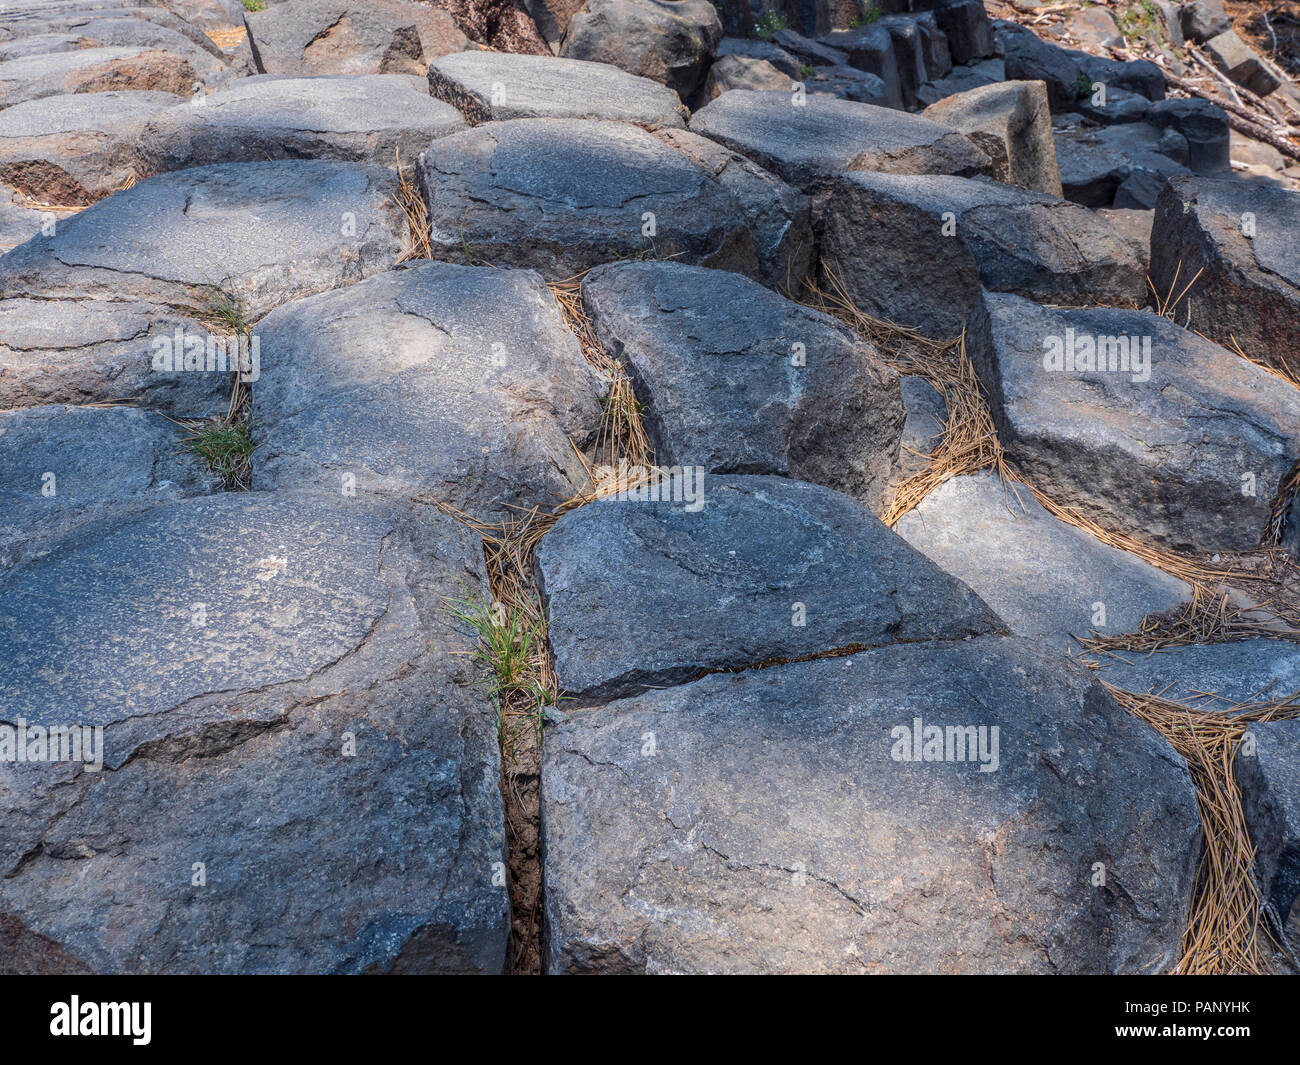 Top of the columns, Devil's Postpile National Monument near Mammoth Lakes, California. - Stock Image